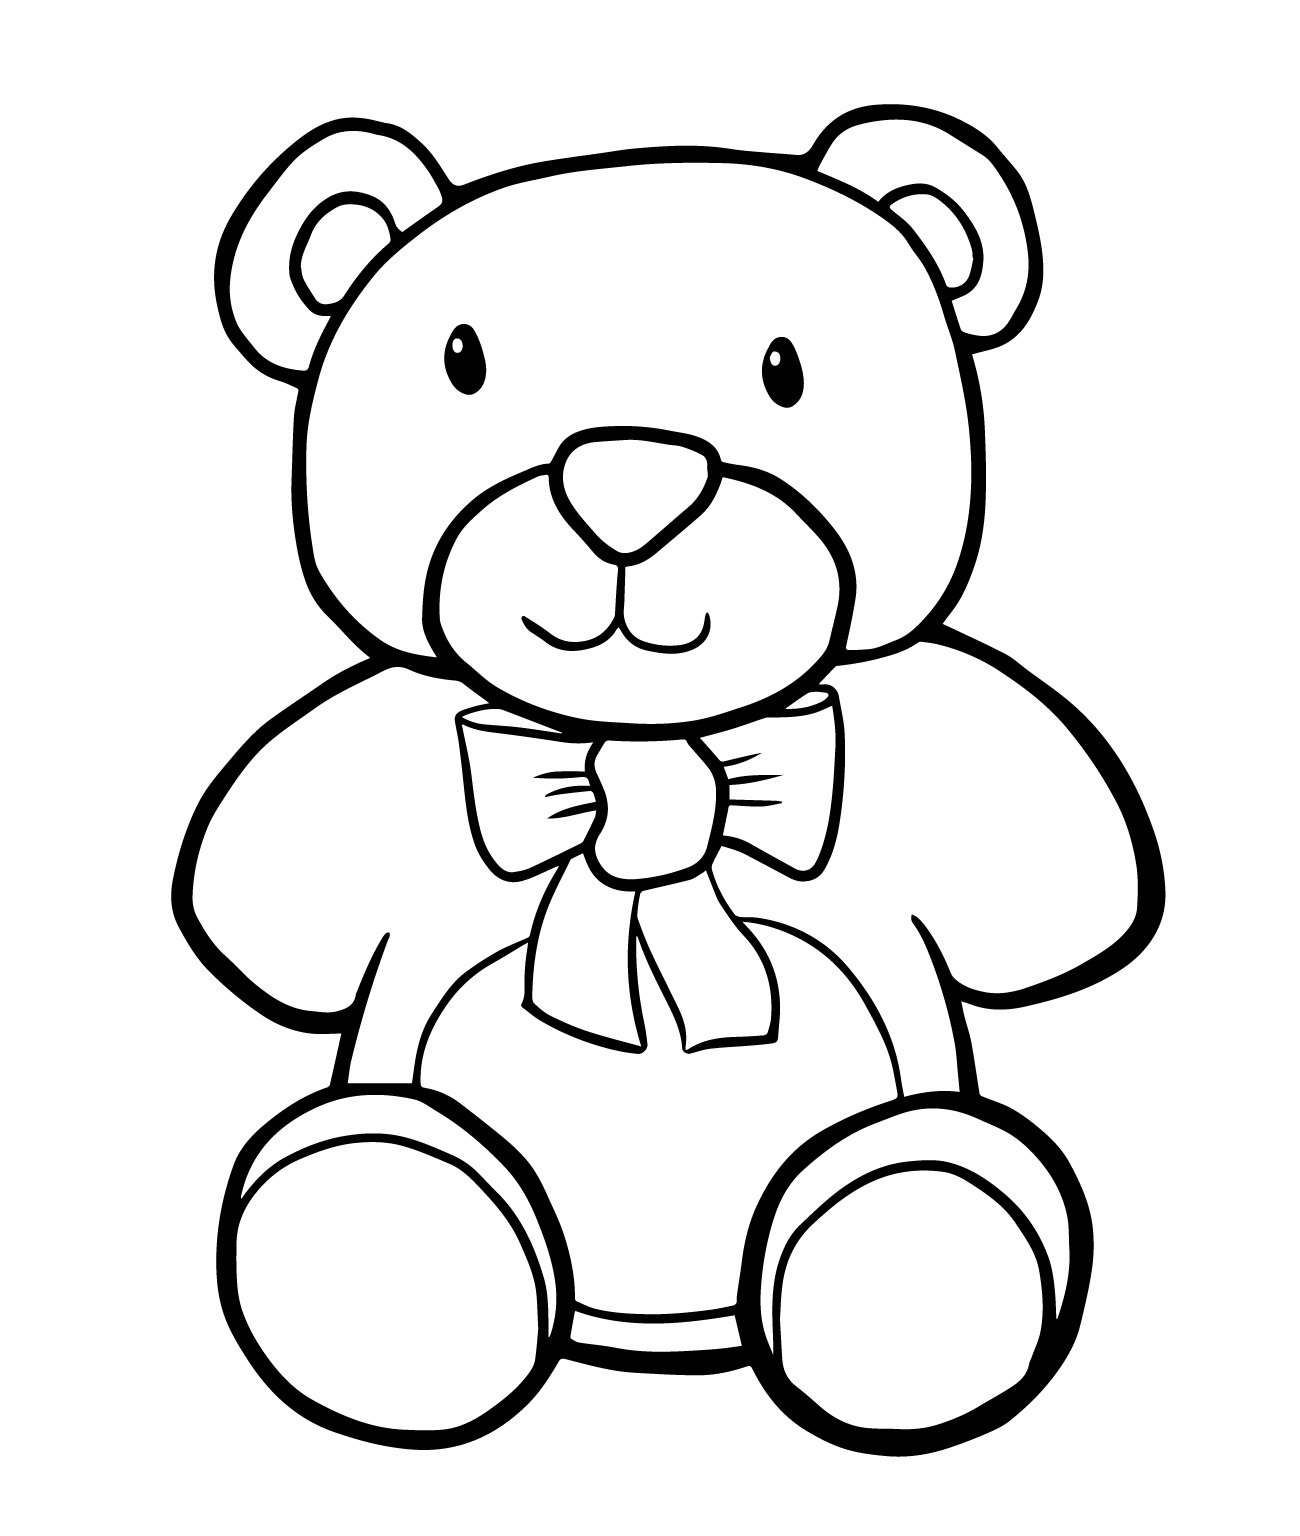 1300x1536 Free Printable Teddy Bear Coloring Pages For Kids Coloring Page